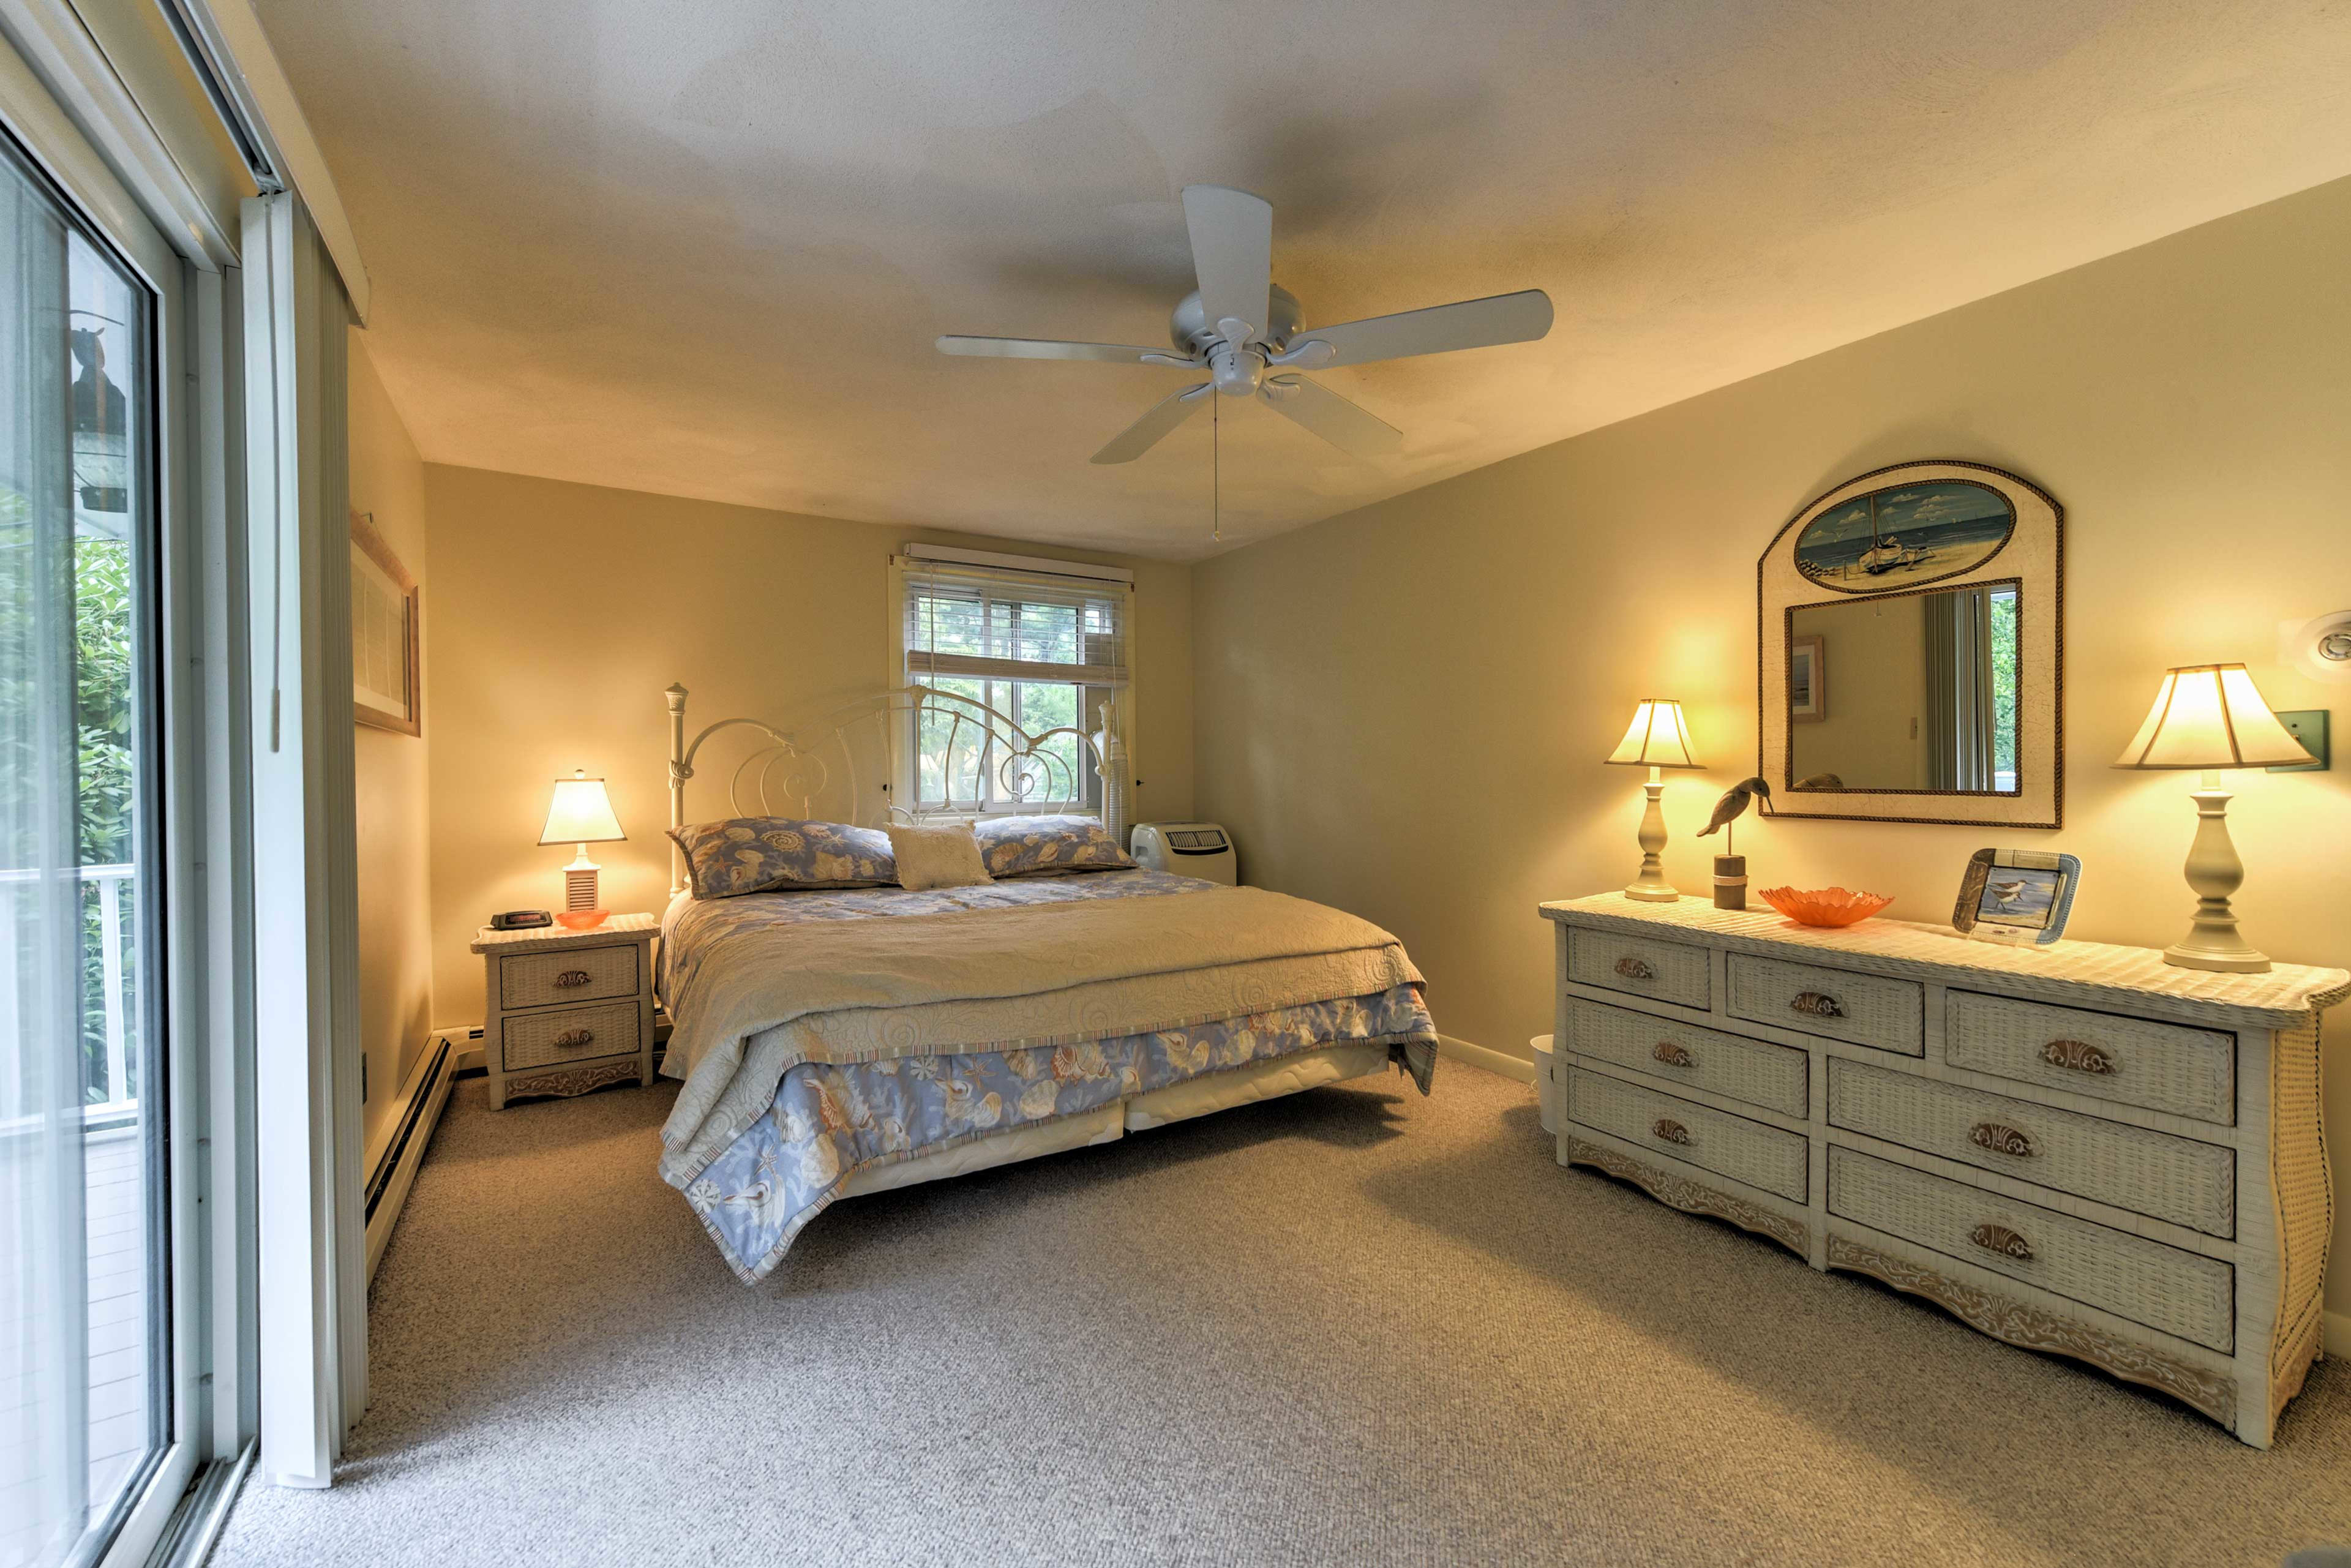 The master bedroom features a king bed and direct access to the balcony.